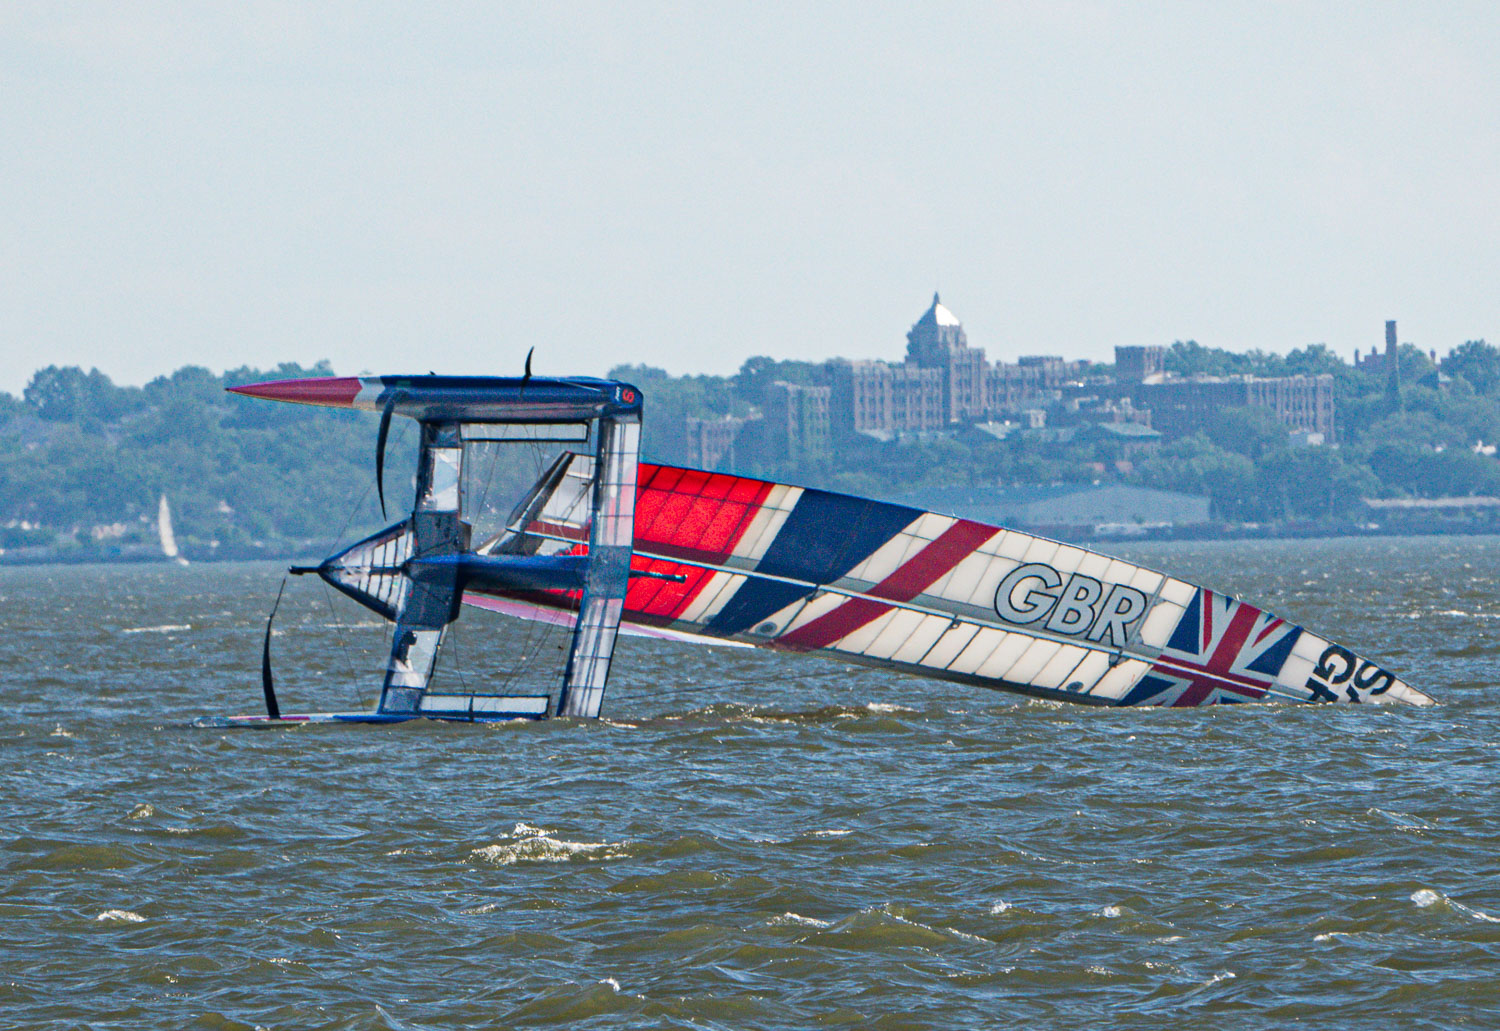 Great Britian capsizes in the Sail GP Race on the Hudson.jpg